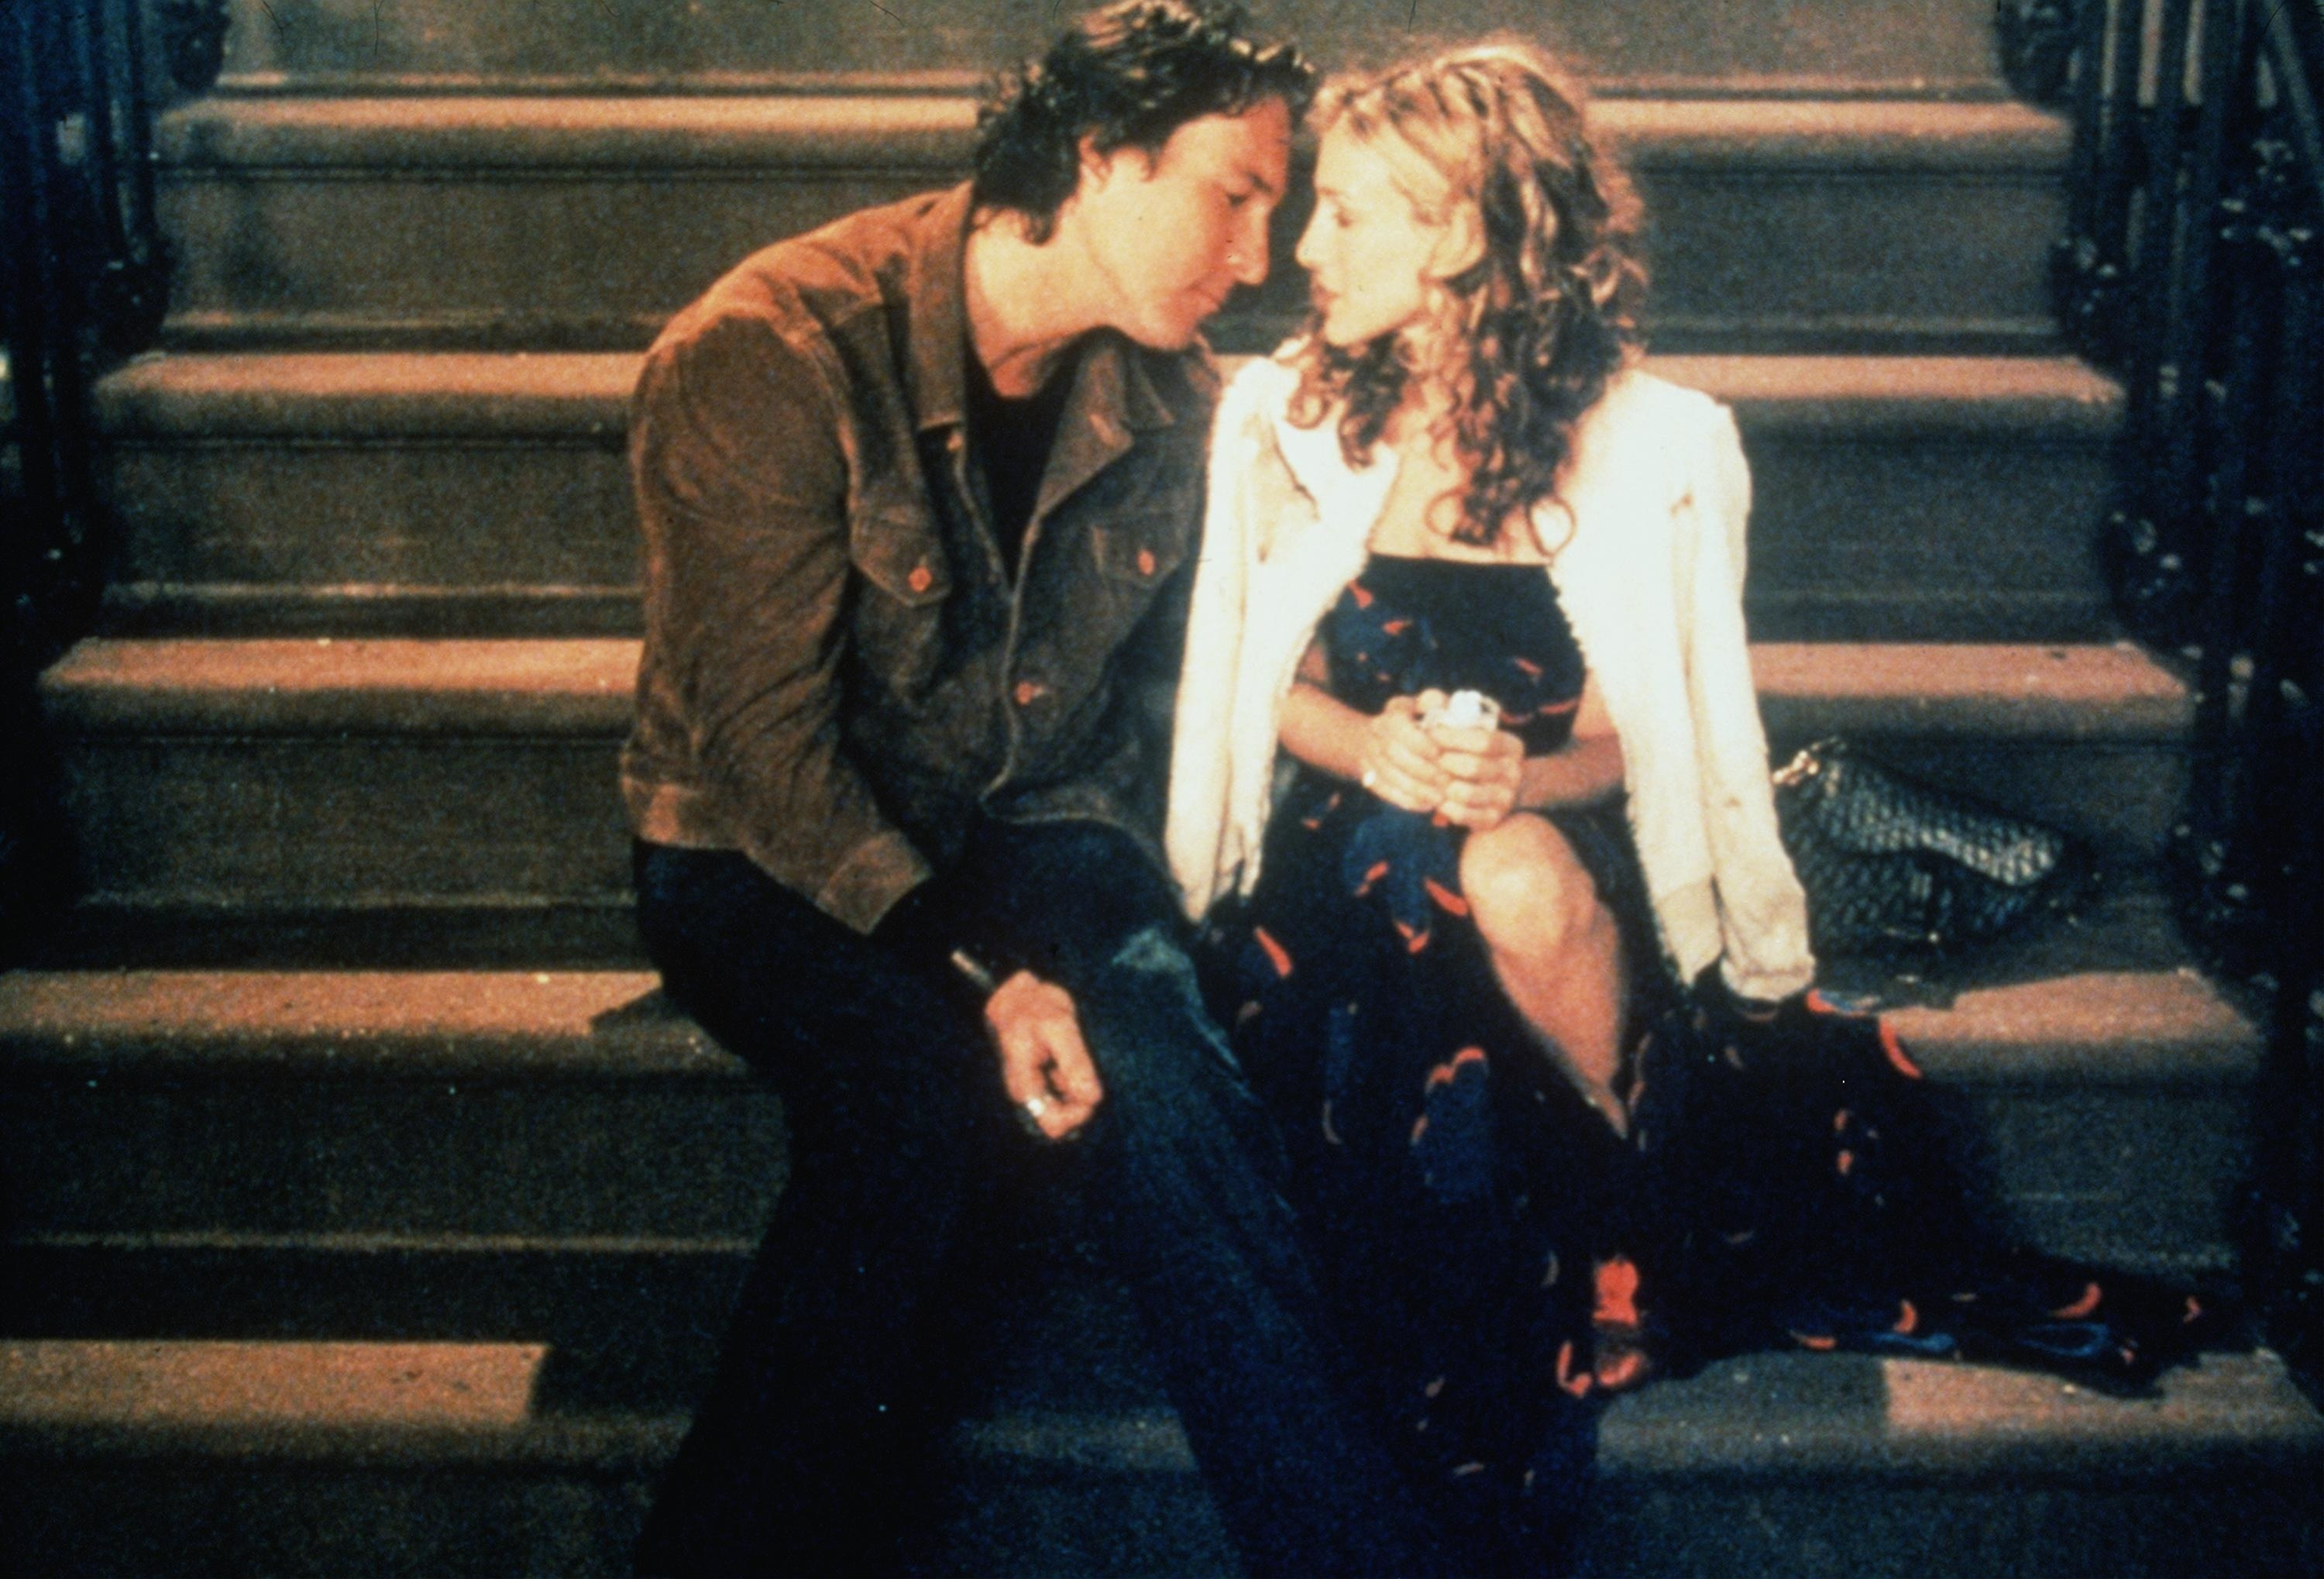 Carrie and Aidan sit on the steps outside a building